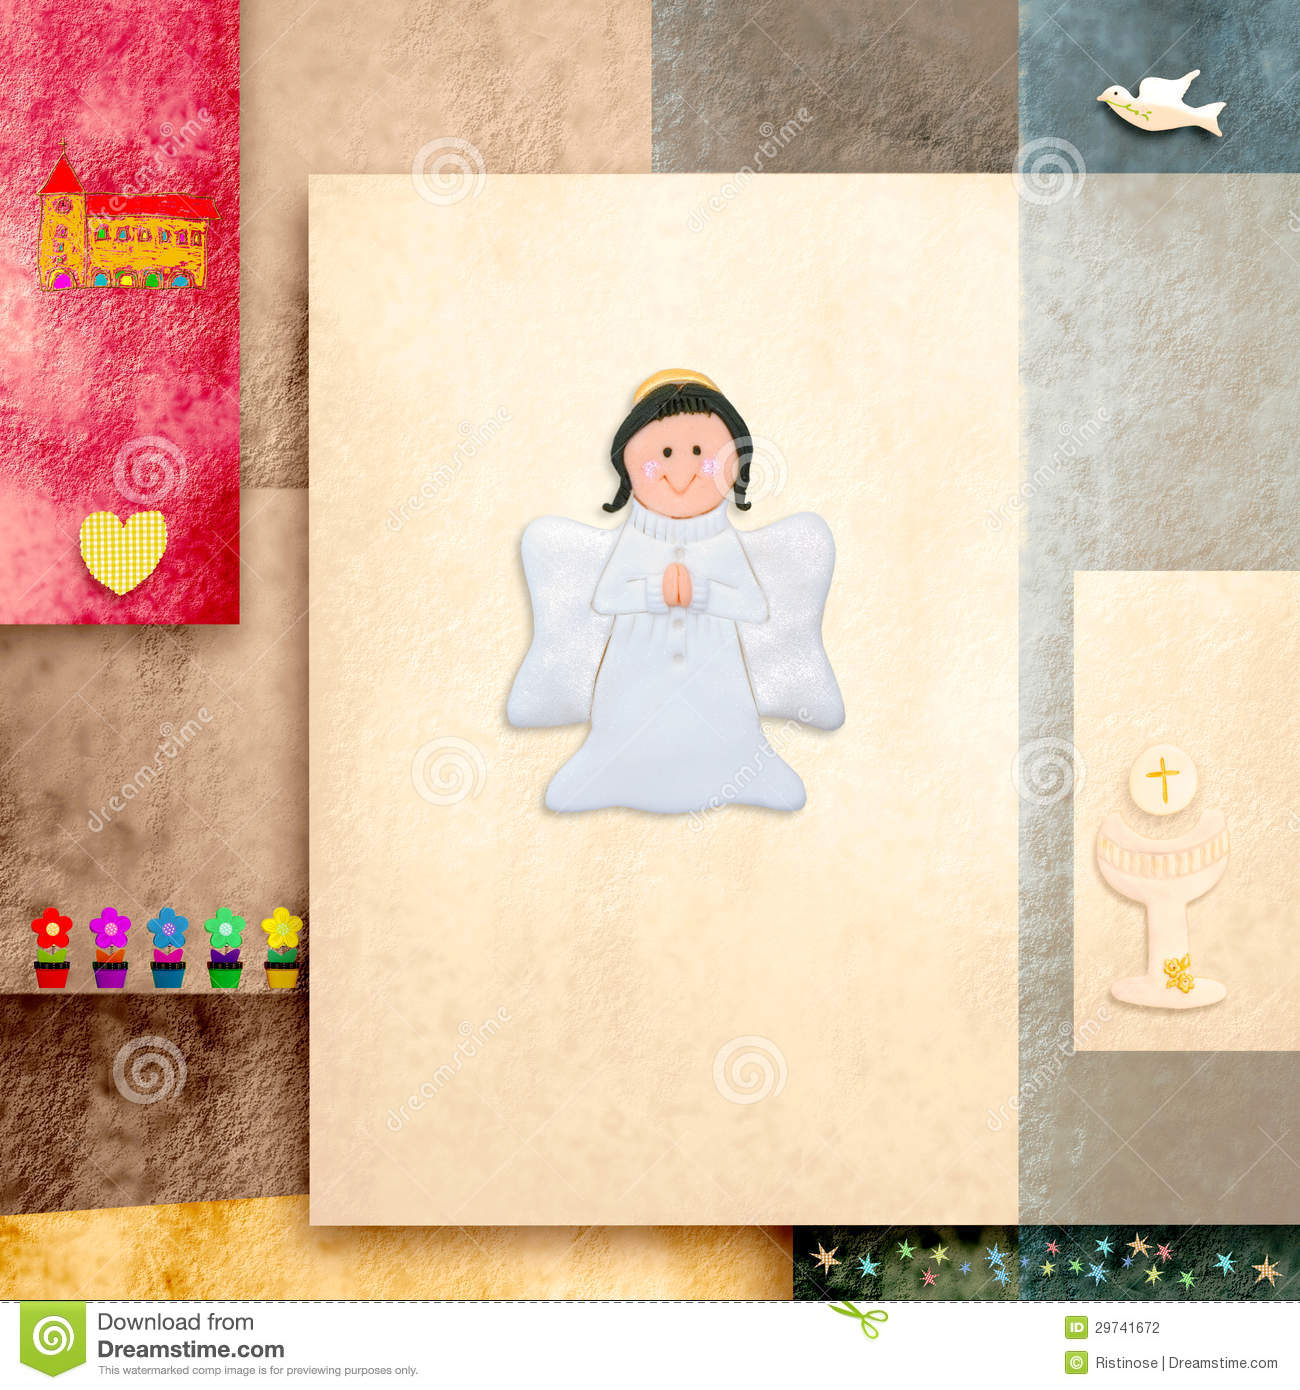 Modern Girl Wallpaper Free Download Cute Angel First Holy Communion Invitation Card Stock